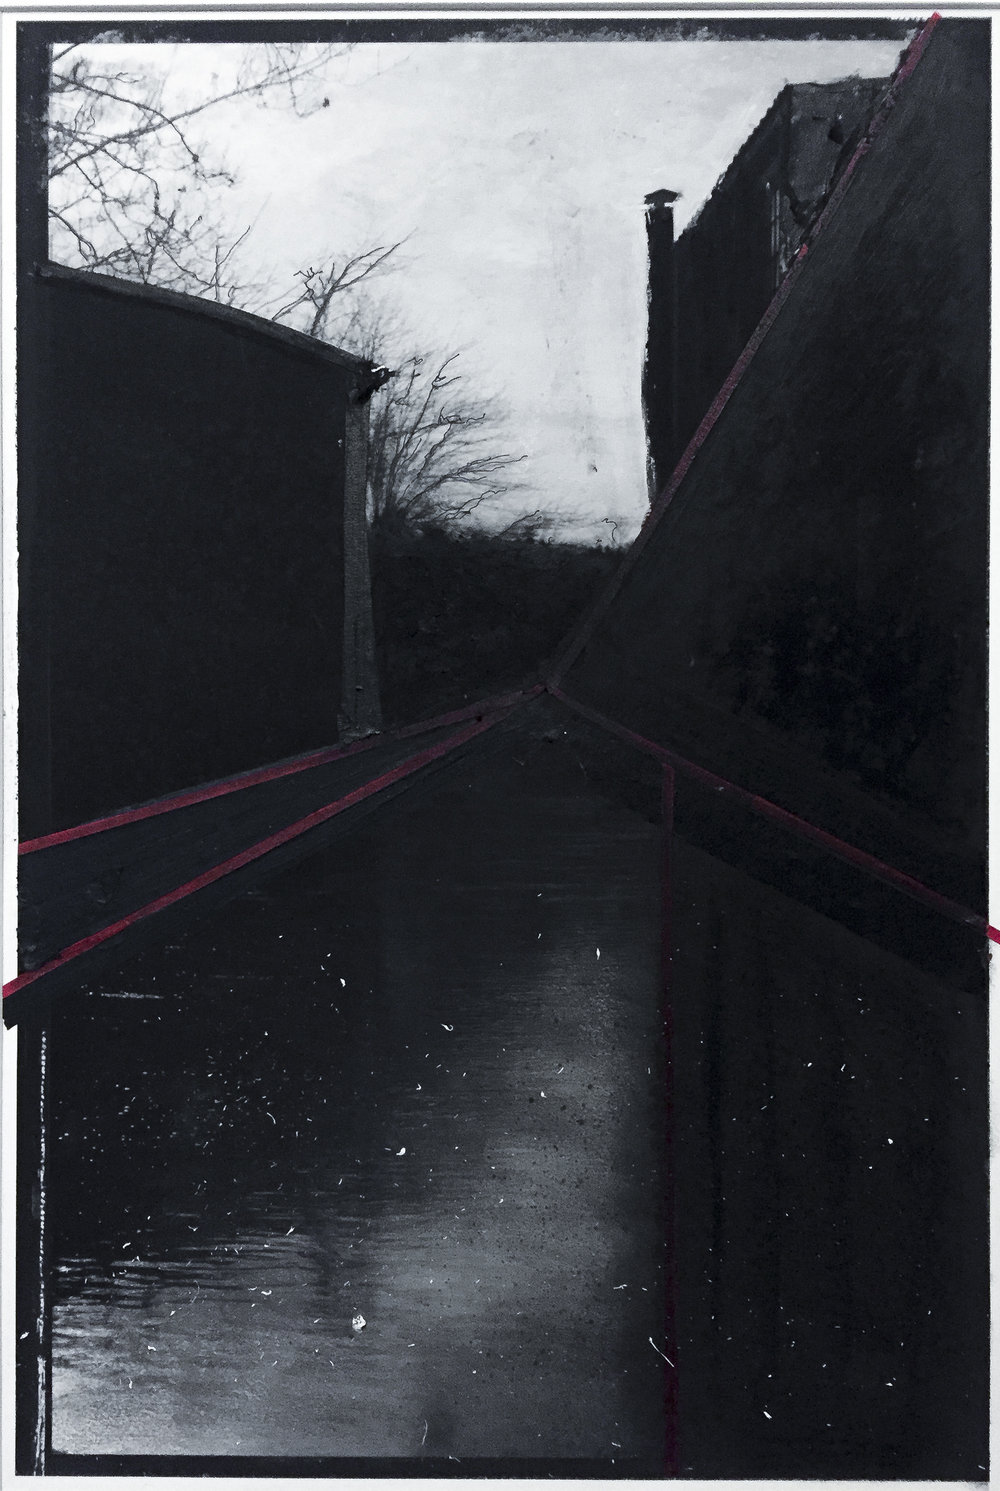 untitled #3 (raceway) charcoal, graphite, and masking tape over pigment print (14x11)